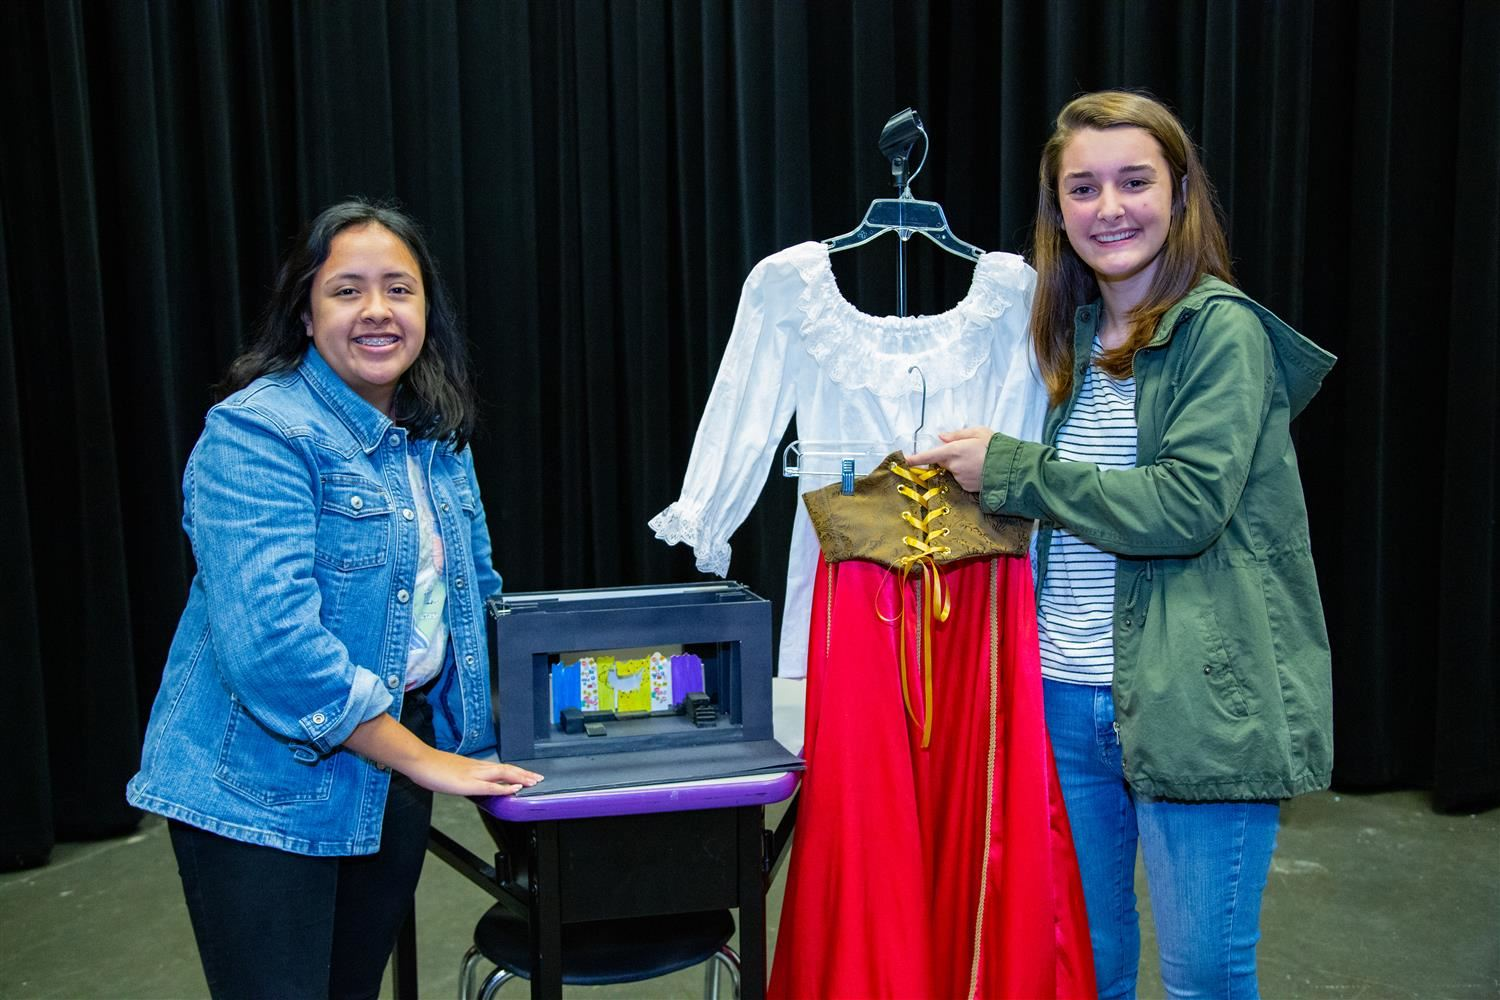 Leslie Cazares and Cassady Copas with their set and costume designe